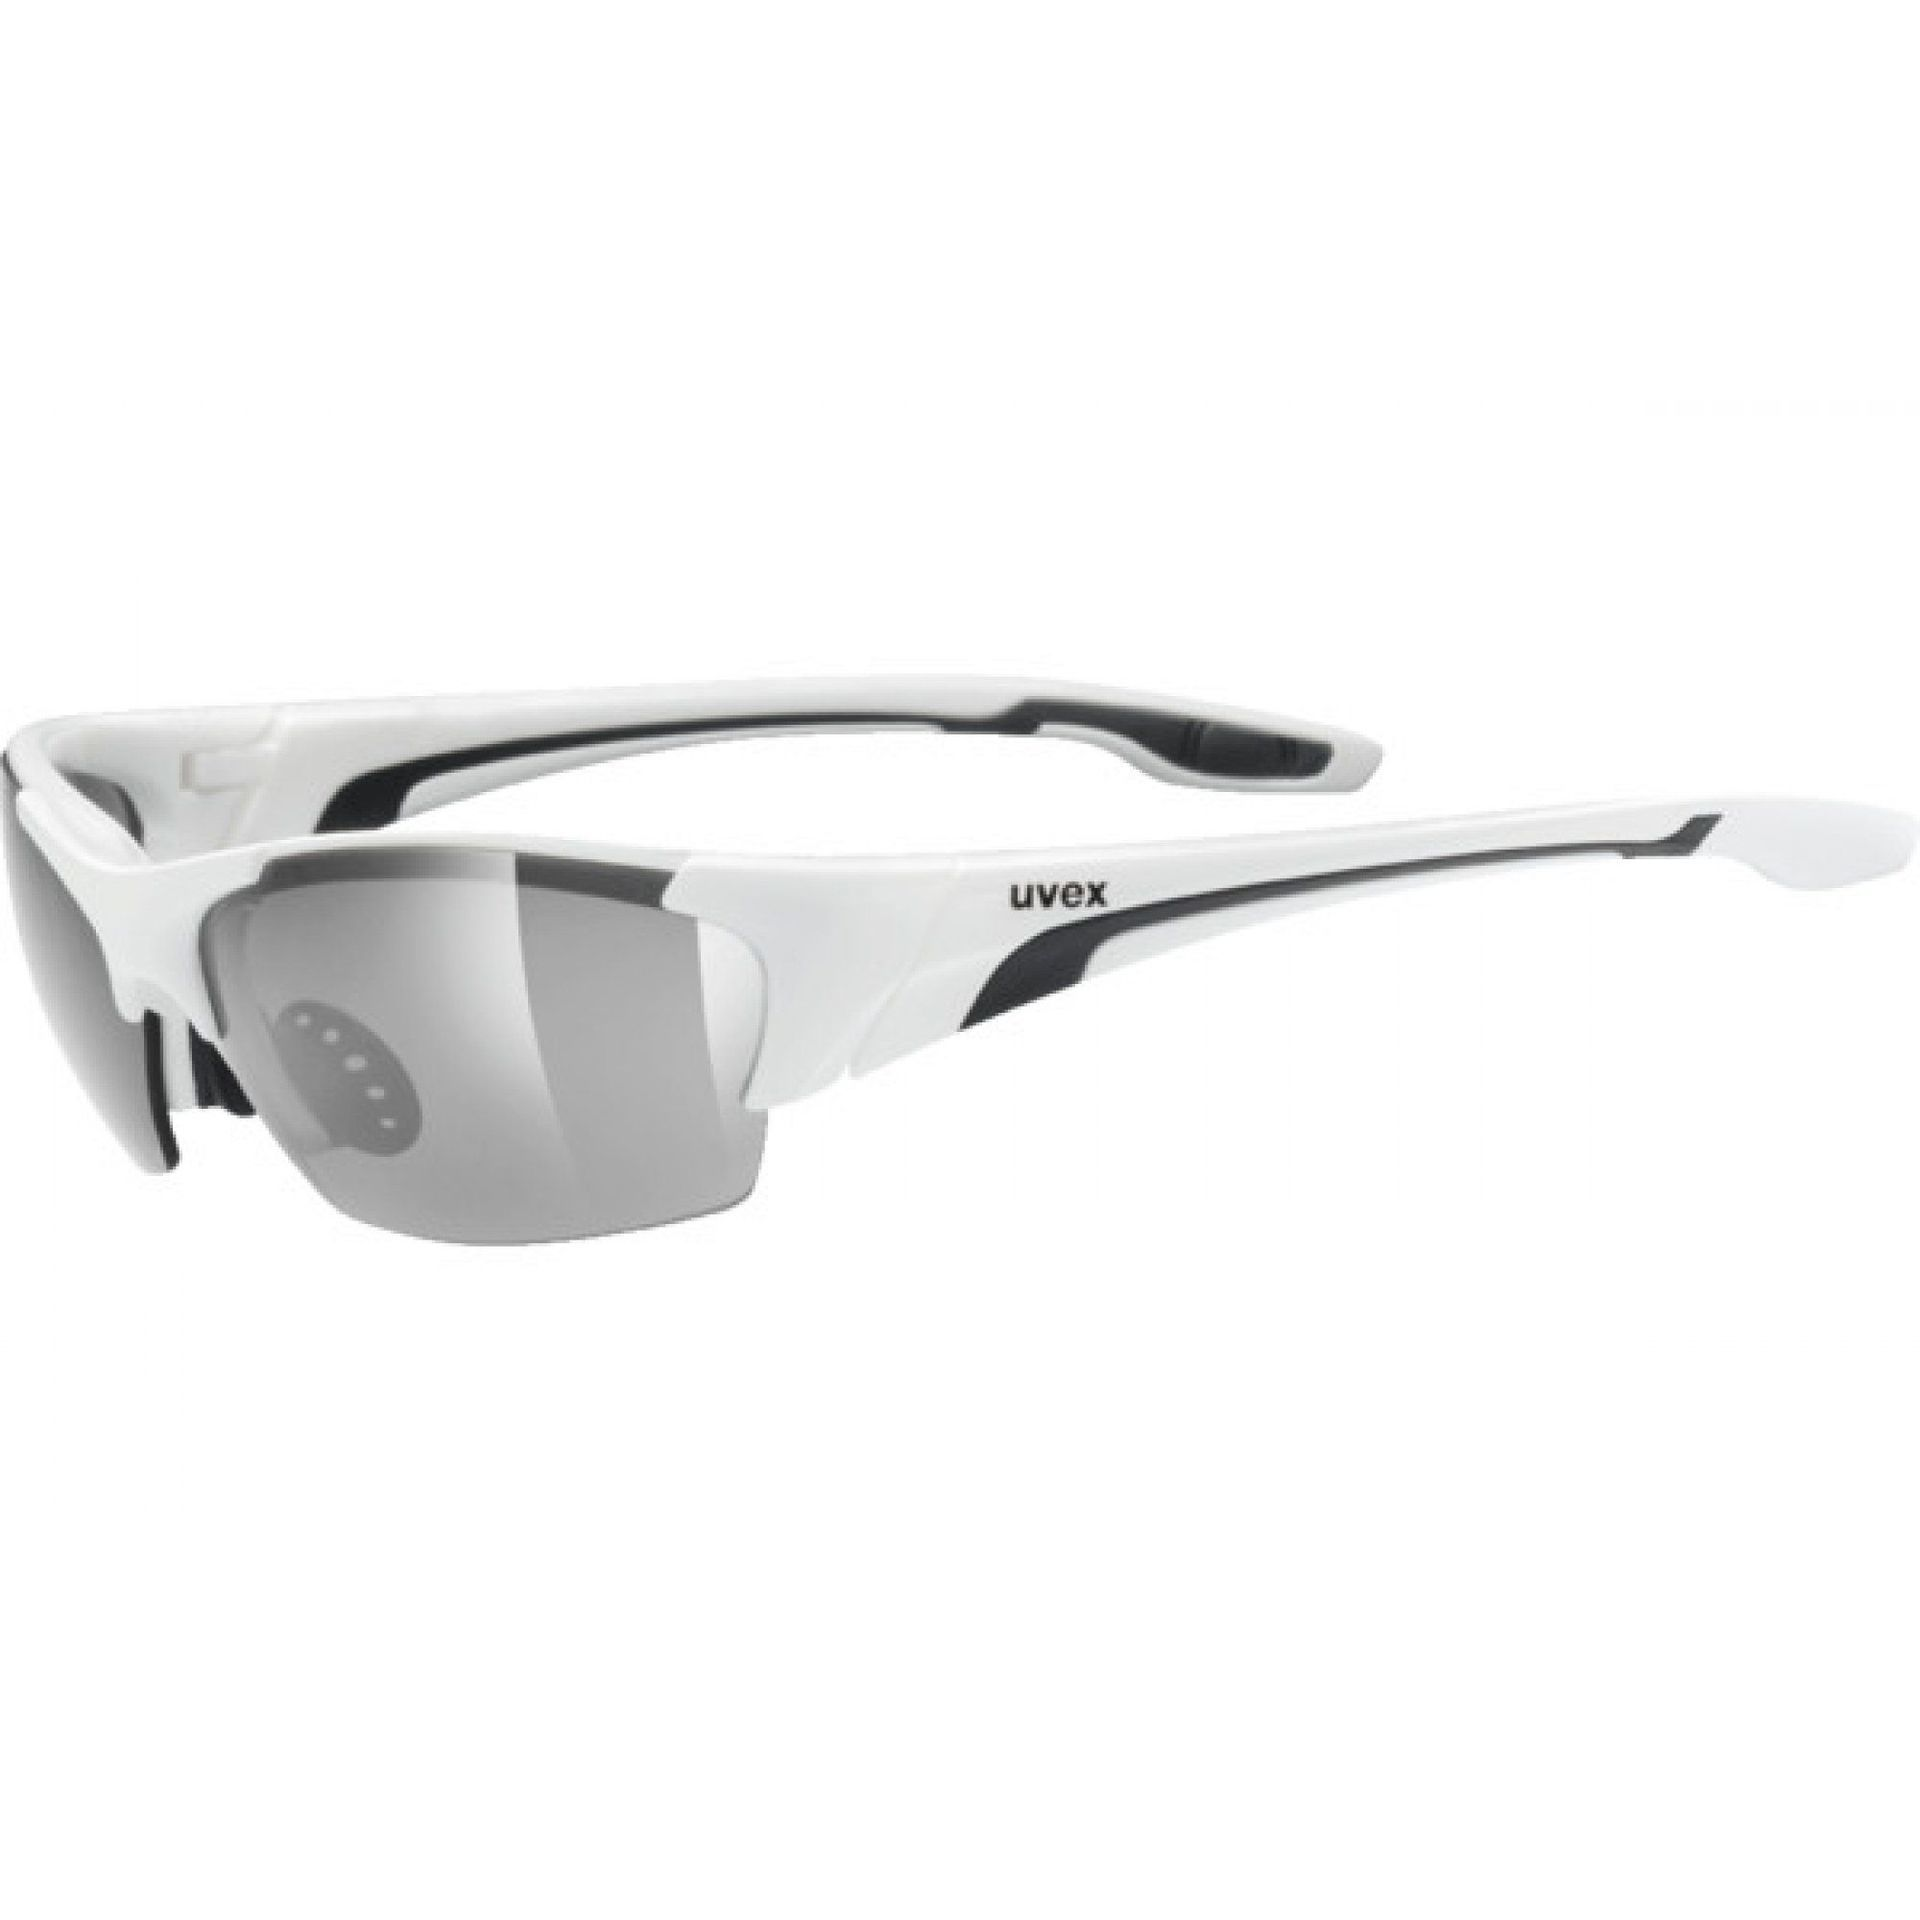 OKULARY UVEX BLAZE III 604|8216 WHITE|BLACK